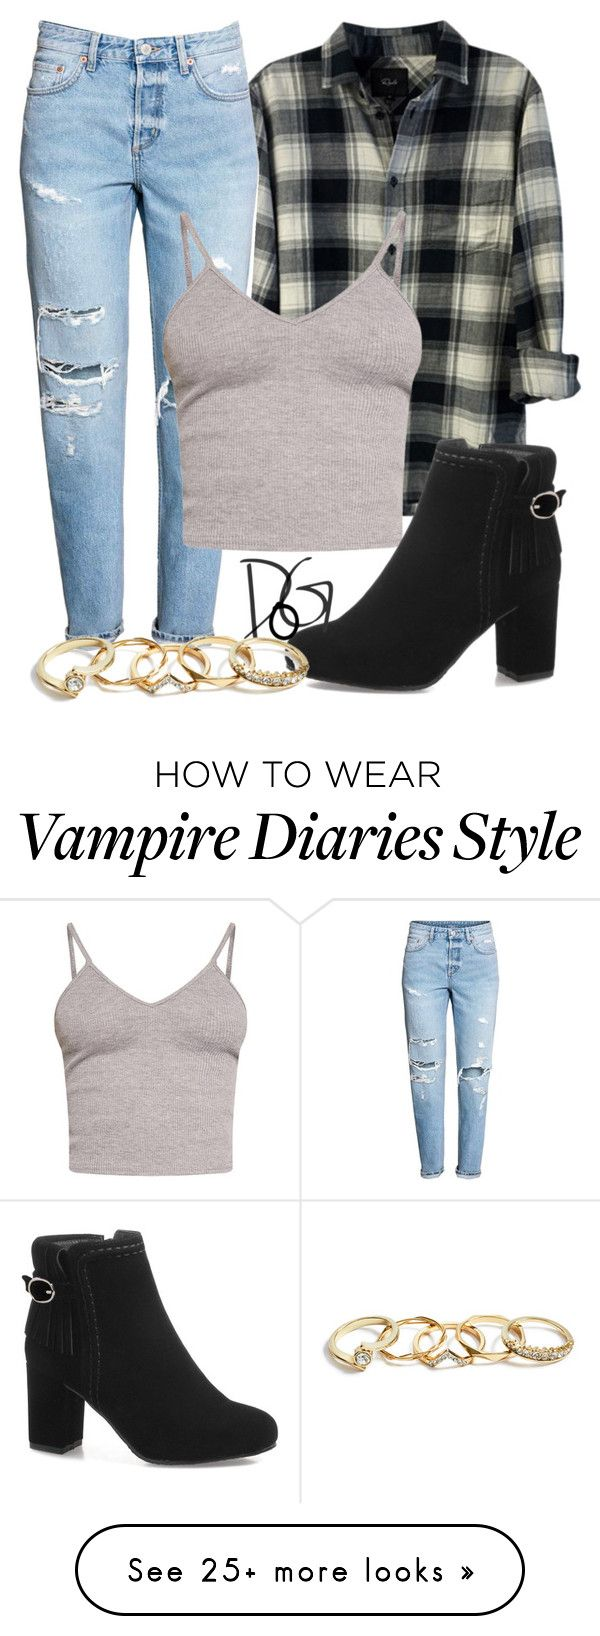 """""""""""Just past the bridge and tunnels, I feel the ground under my shoes"""" / Bonnie Bennett - The Vampire Diaries"""" by dreamsofglory on Polyvore featuring Rails, BasicGrey and GUESS"""